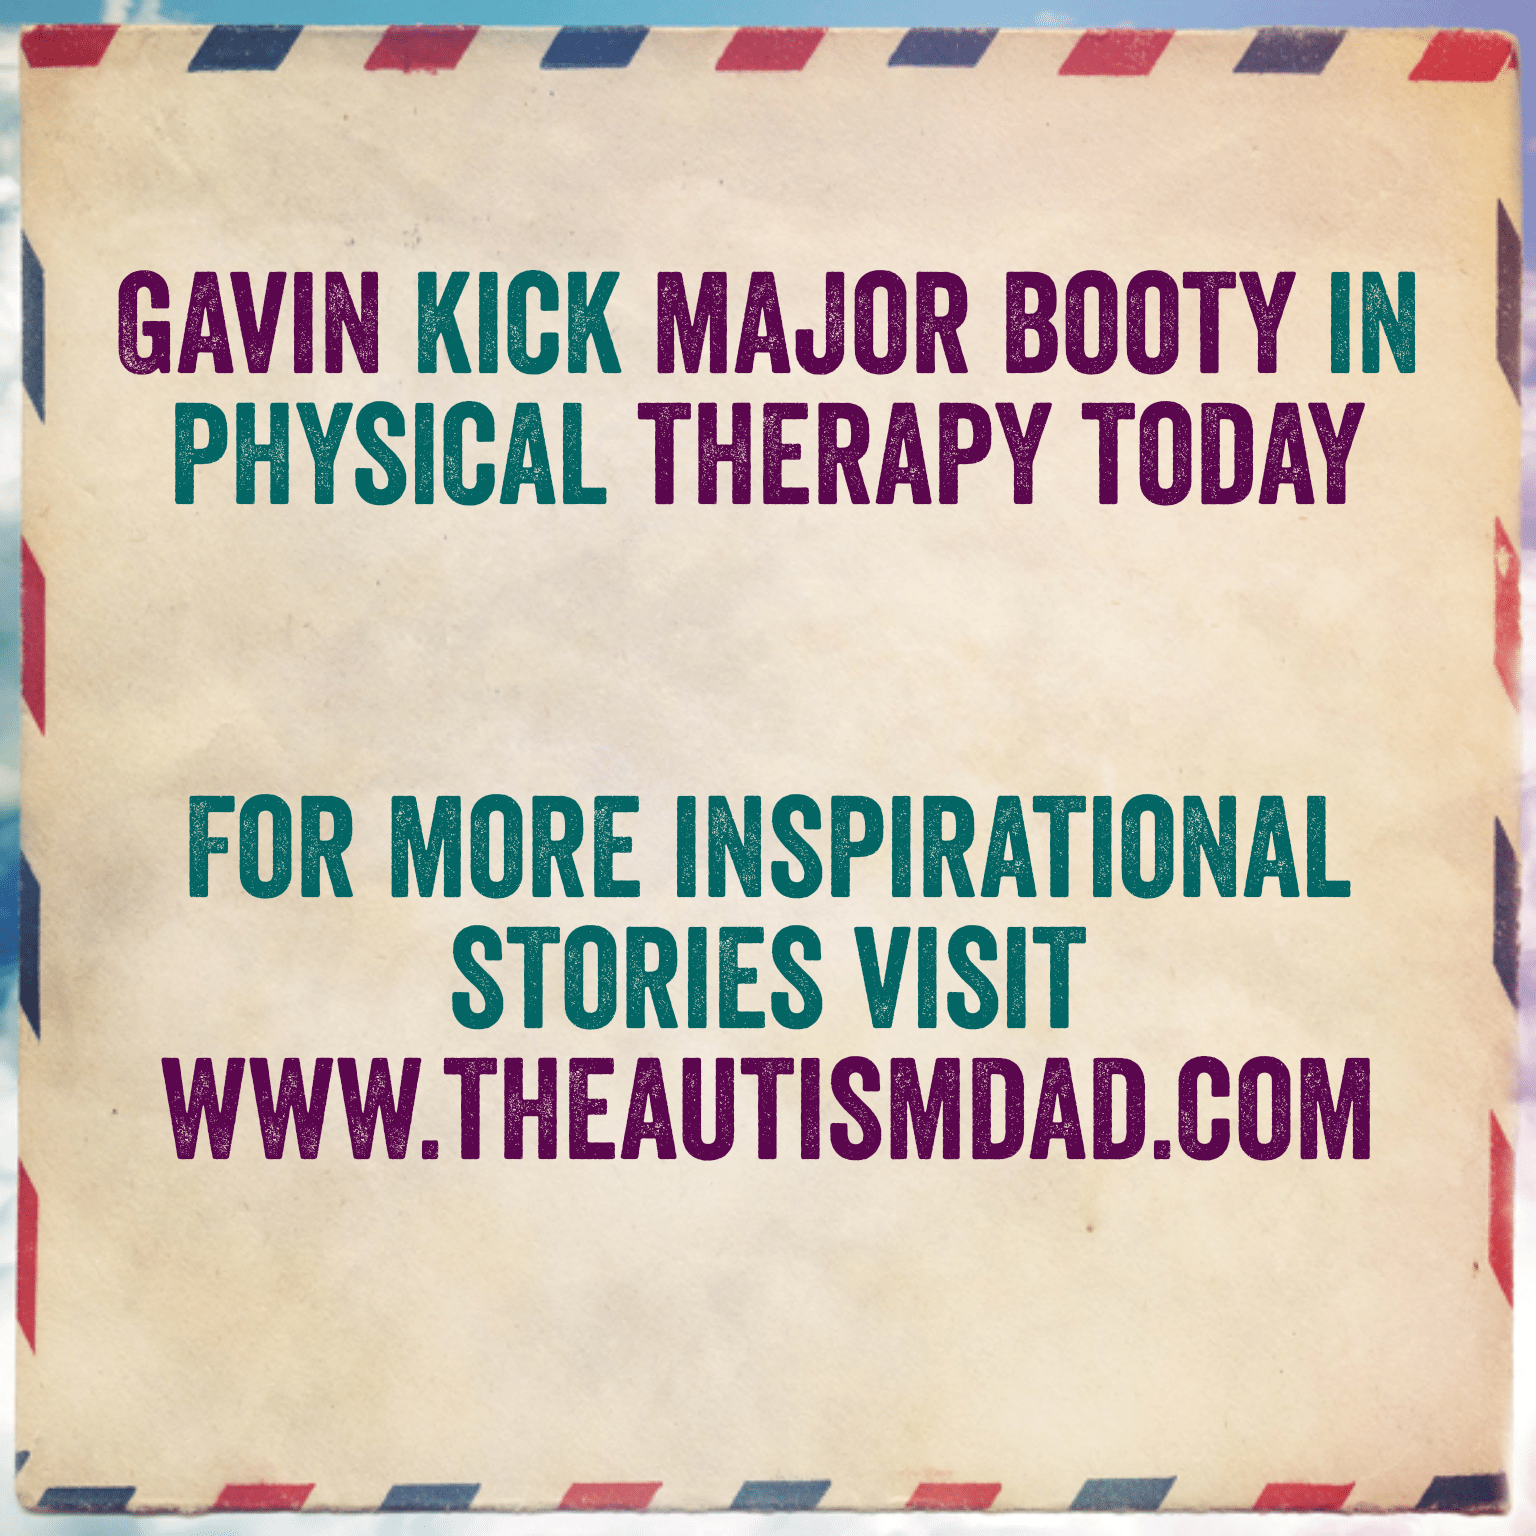 Gavin kick major booty in physical therapy today